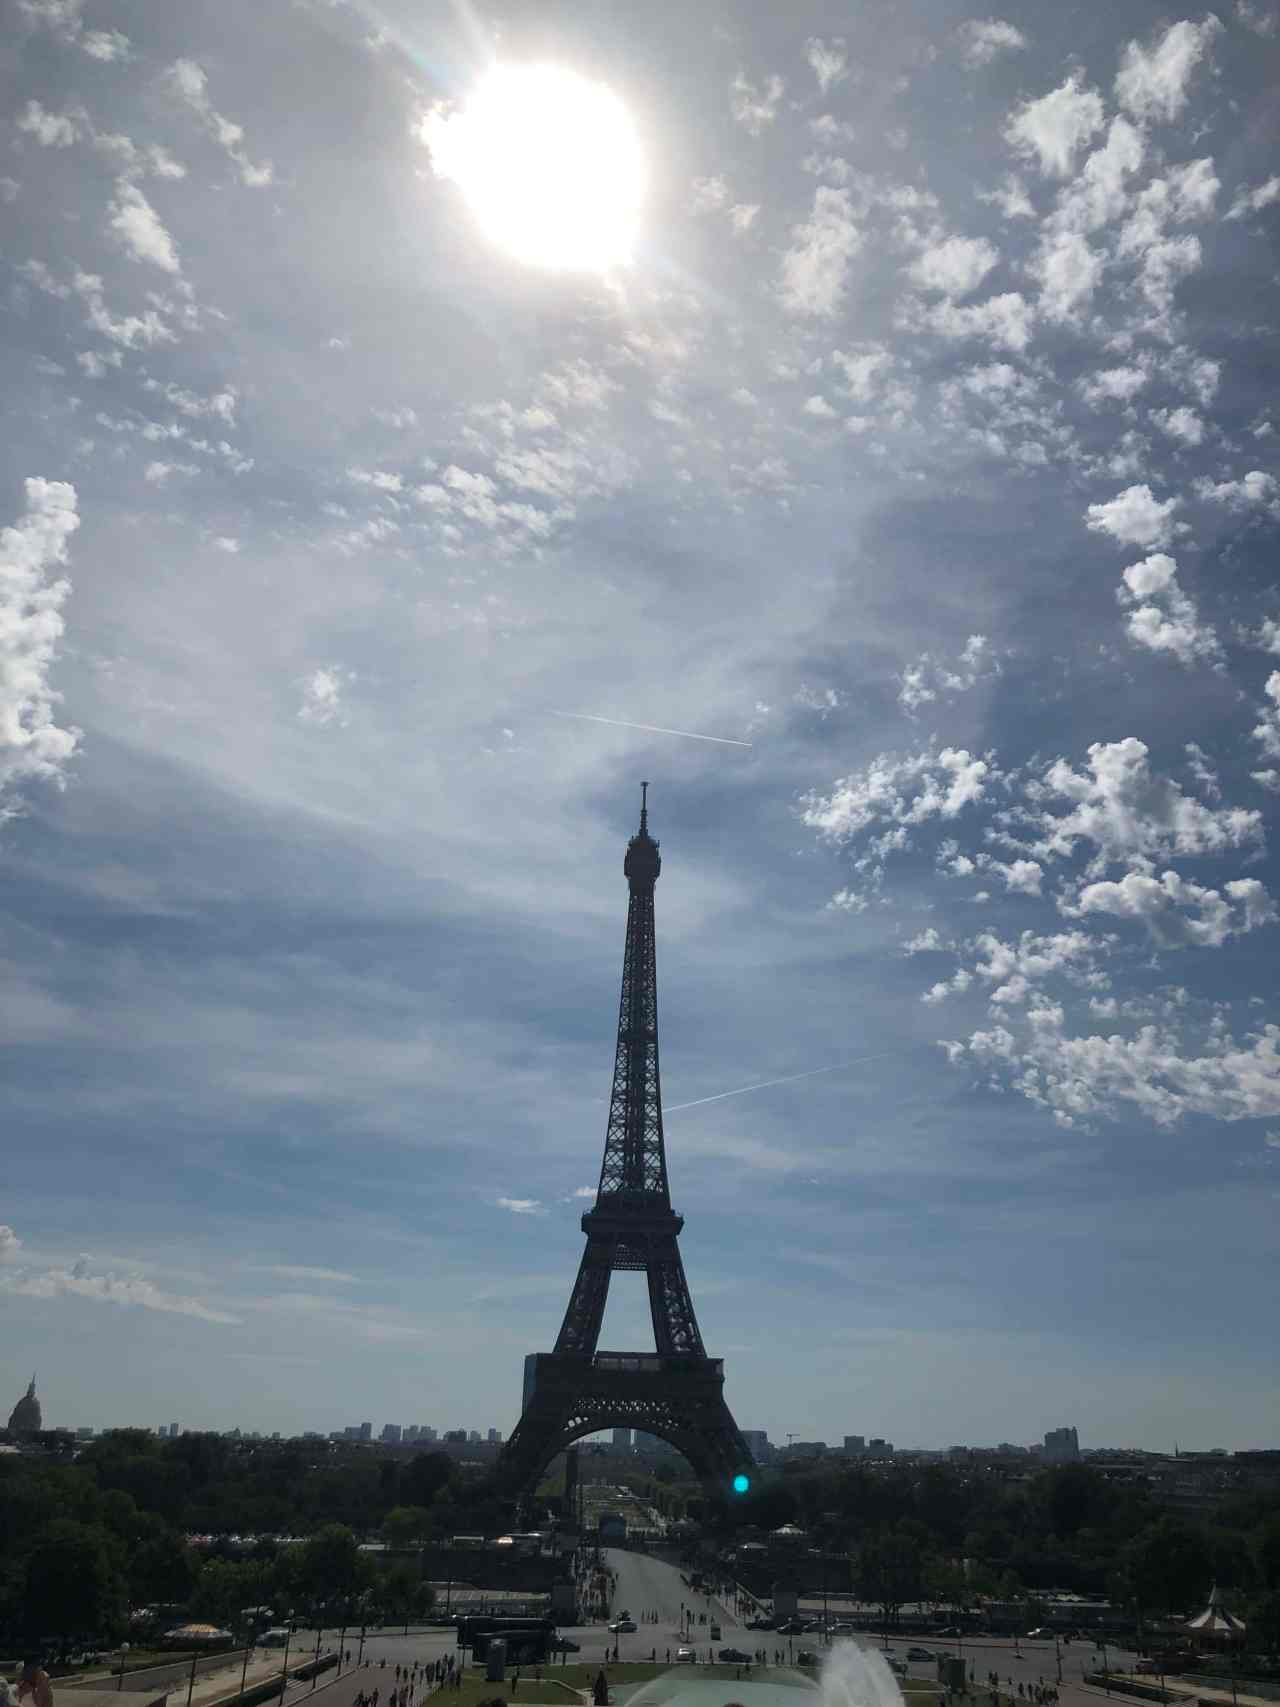 The Eiffel Tower on a sunny day